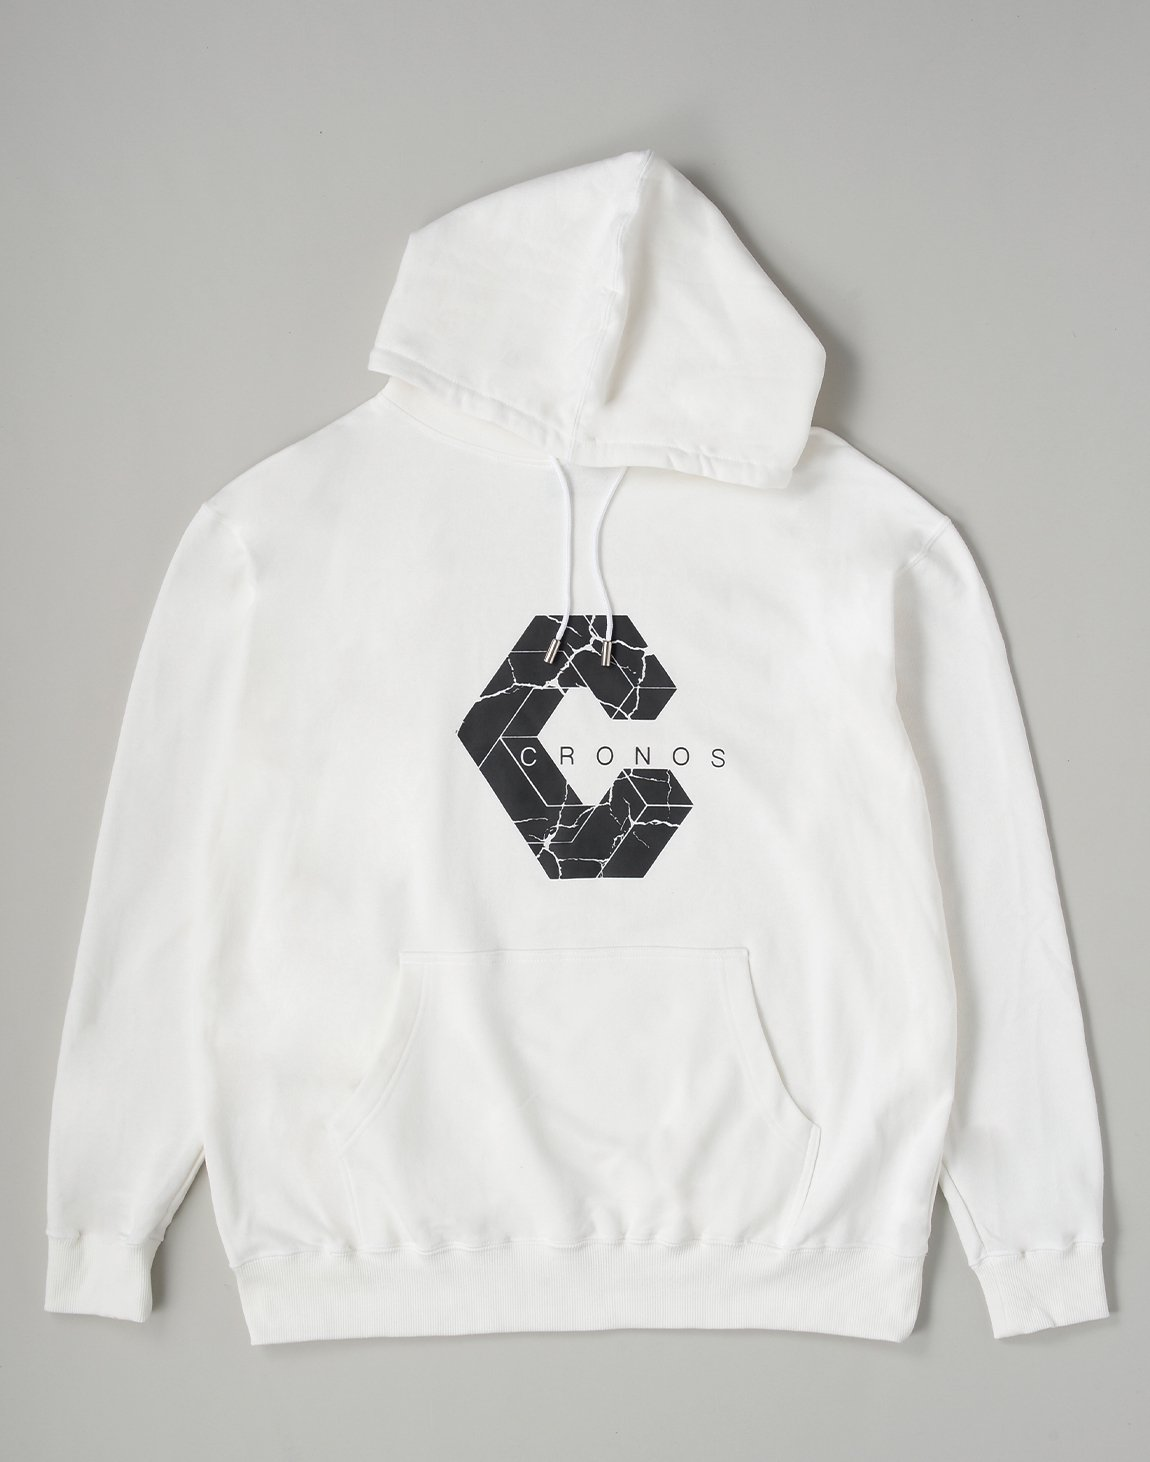 <img class='new_mark_img1' src='https://img.shop-pro.jp/img/new/icons1.gif' style='border:none;display:inline;margin:0px;padding:0px;width:auto;' />CRONOS SIGNATURE LOGO HOODIE【WHITE】